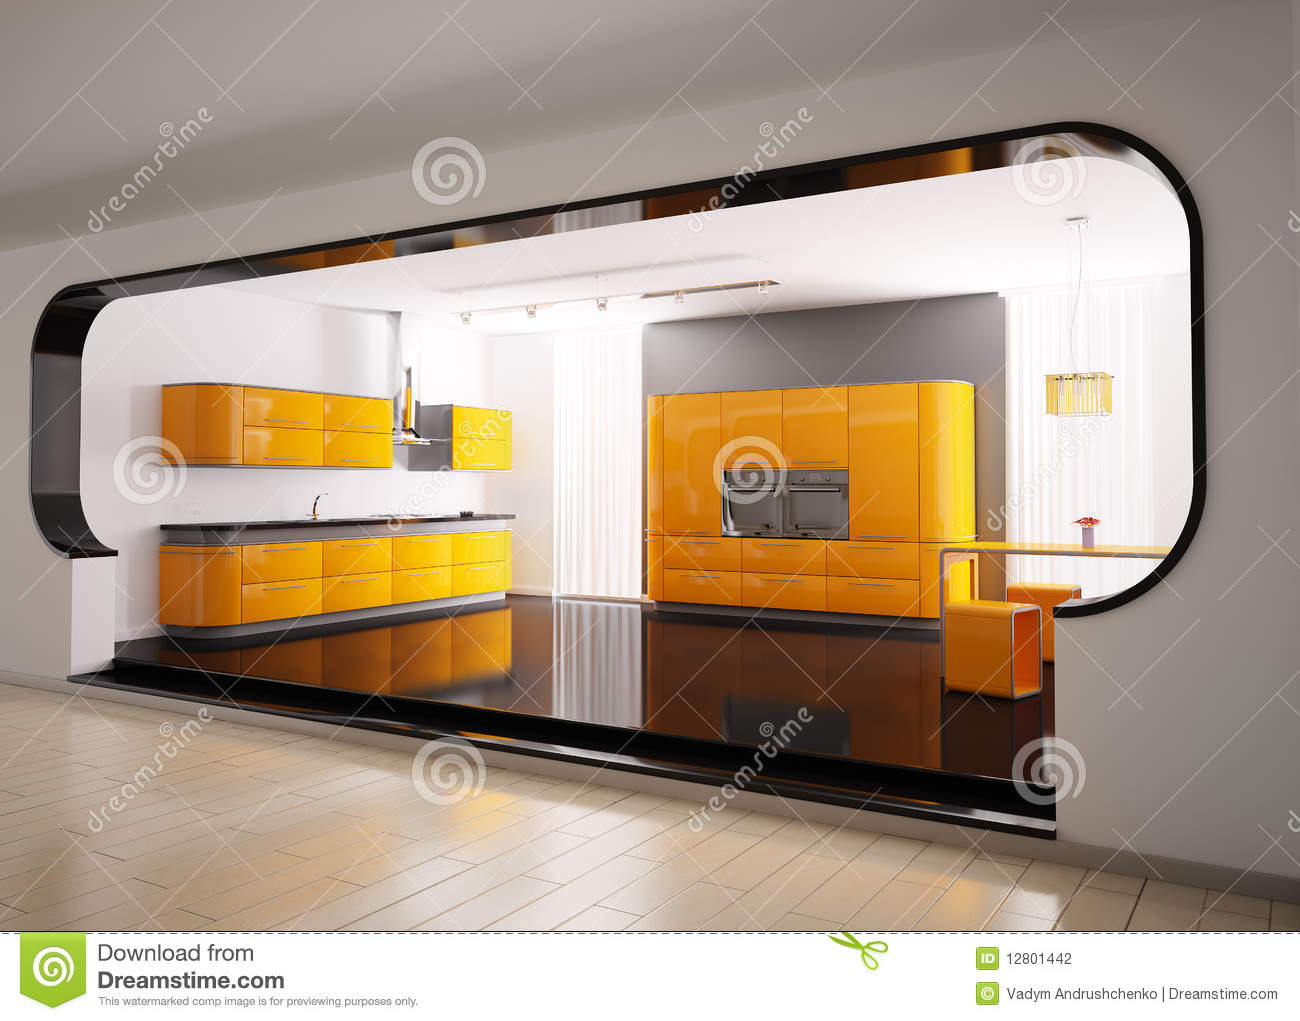 Cuisine grise orange 3d photographie stock image 12801442 for Cuisine 3d max